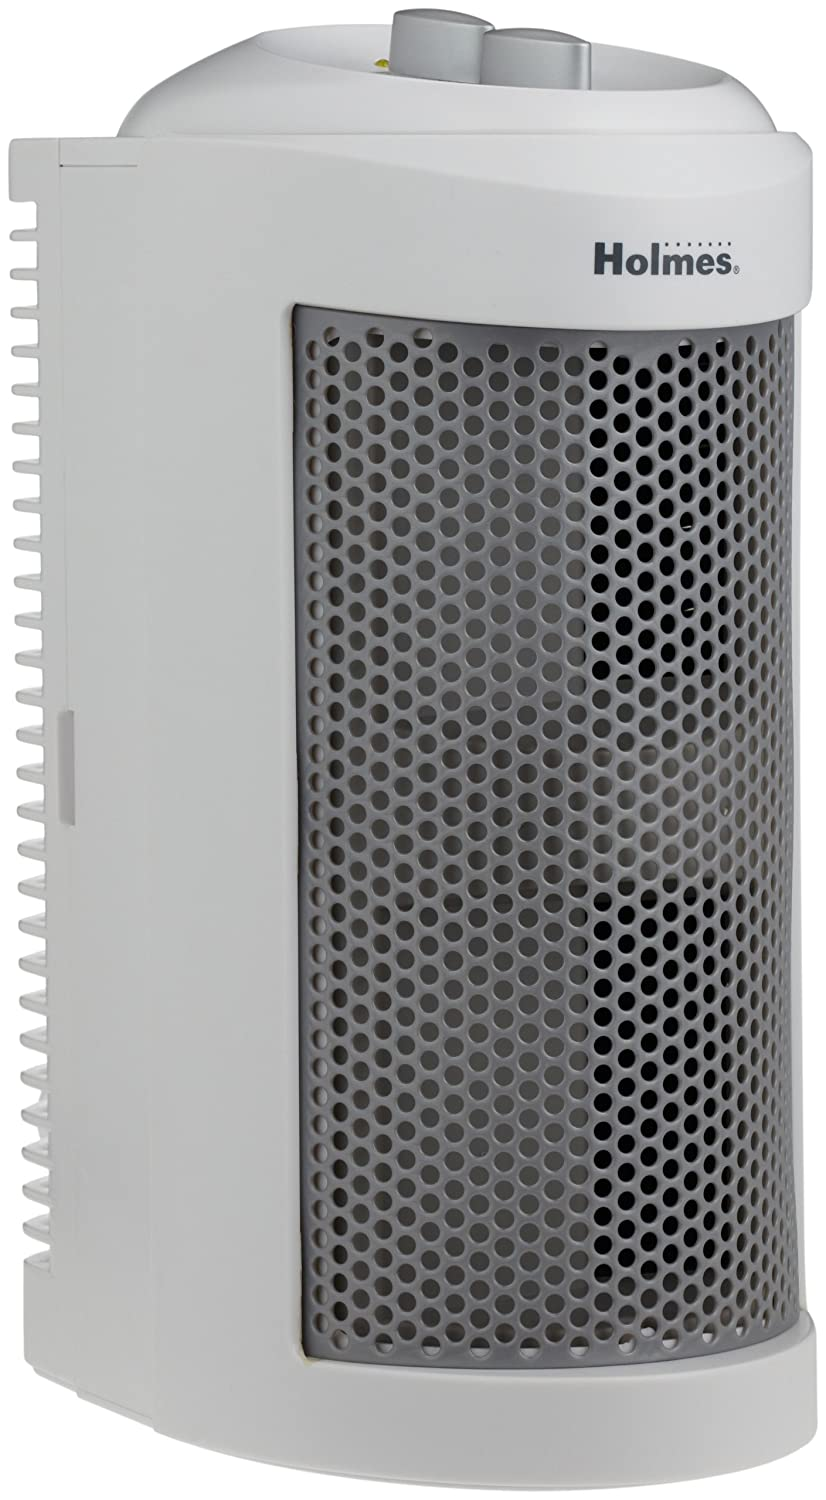 Air Purifier With Washable HEPA Filter_Holmes True HEPA Mini Tower Allergen Remover, HAP706-U